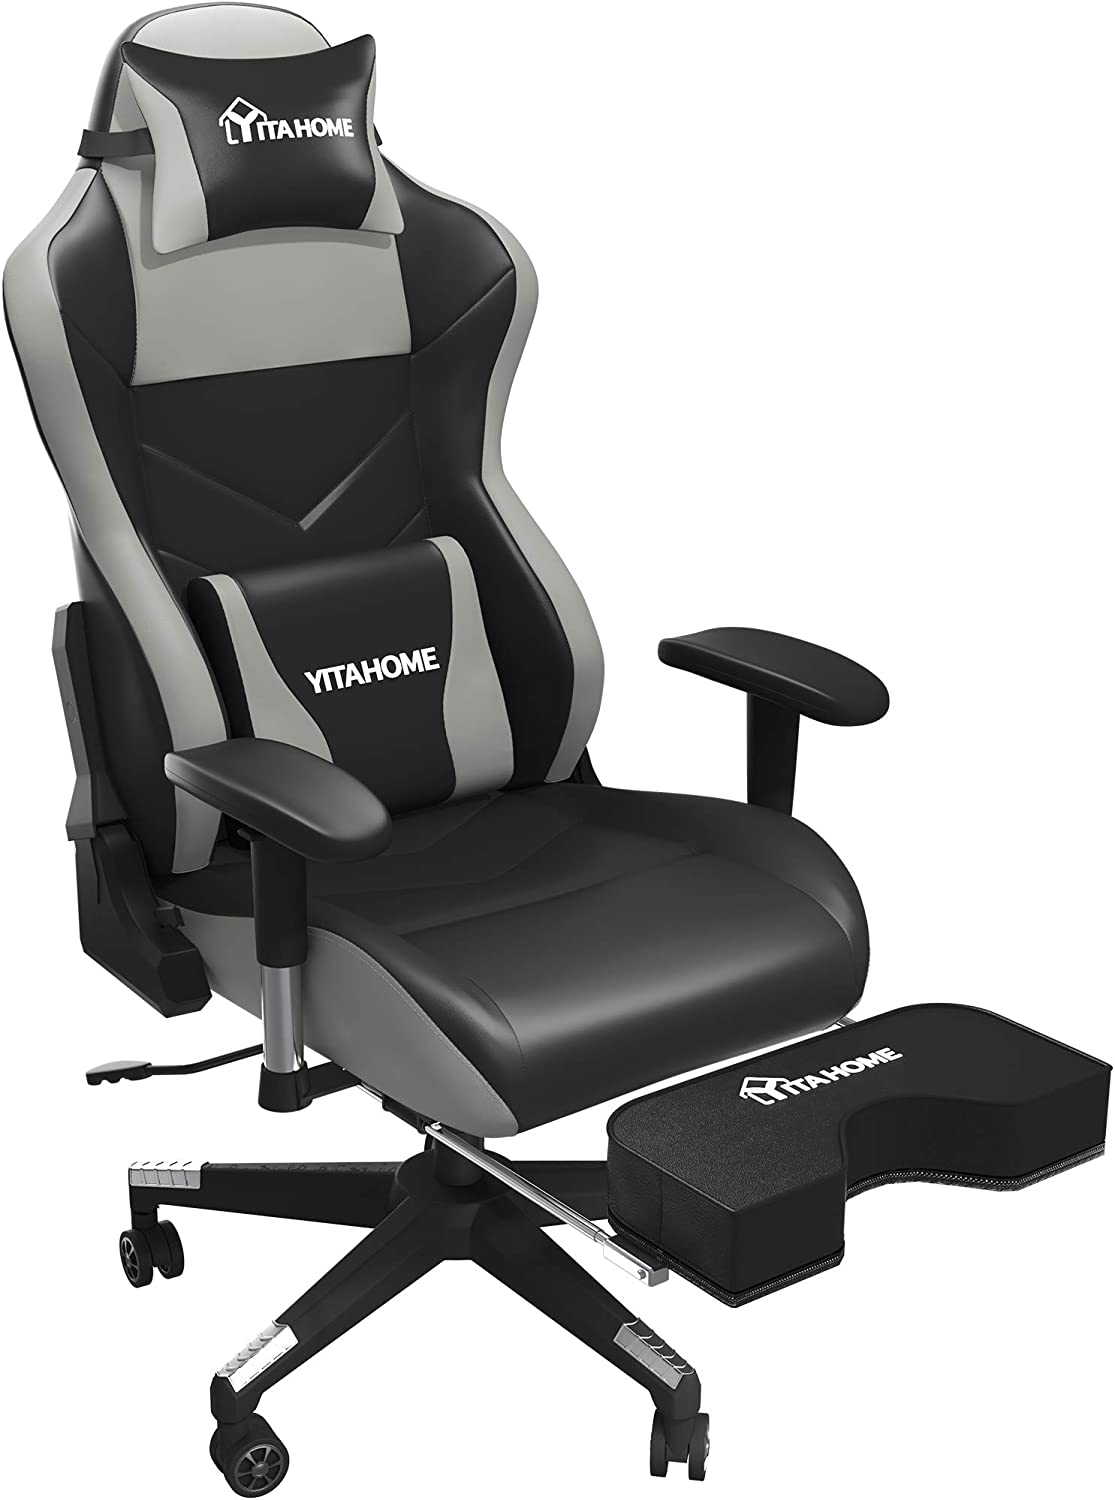 YITAHOME Big and Limited price sale Tall Gaming Chair Capacity Wholesale Duty 400lb Heavy Hig